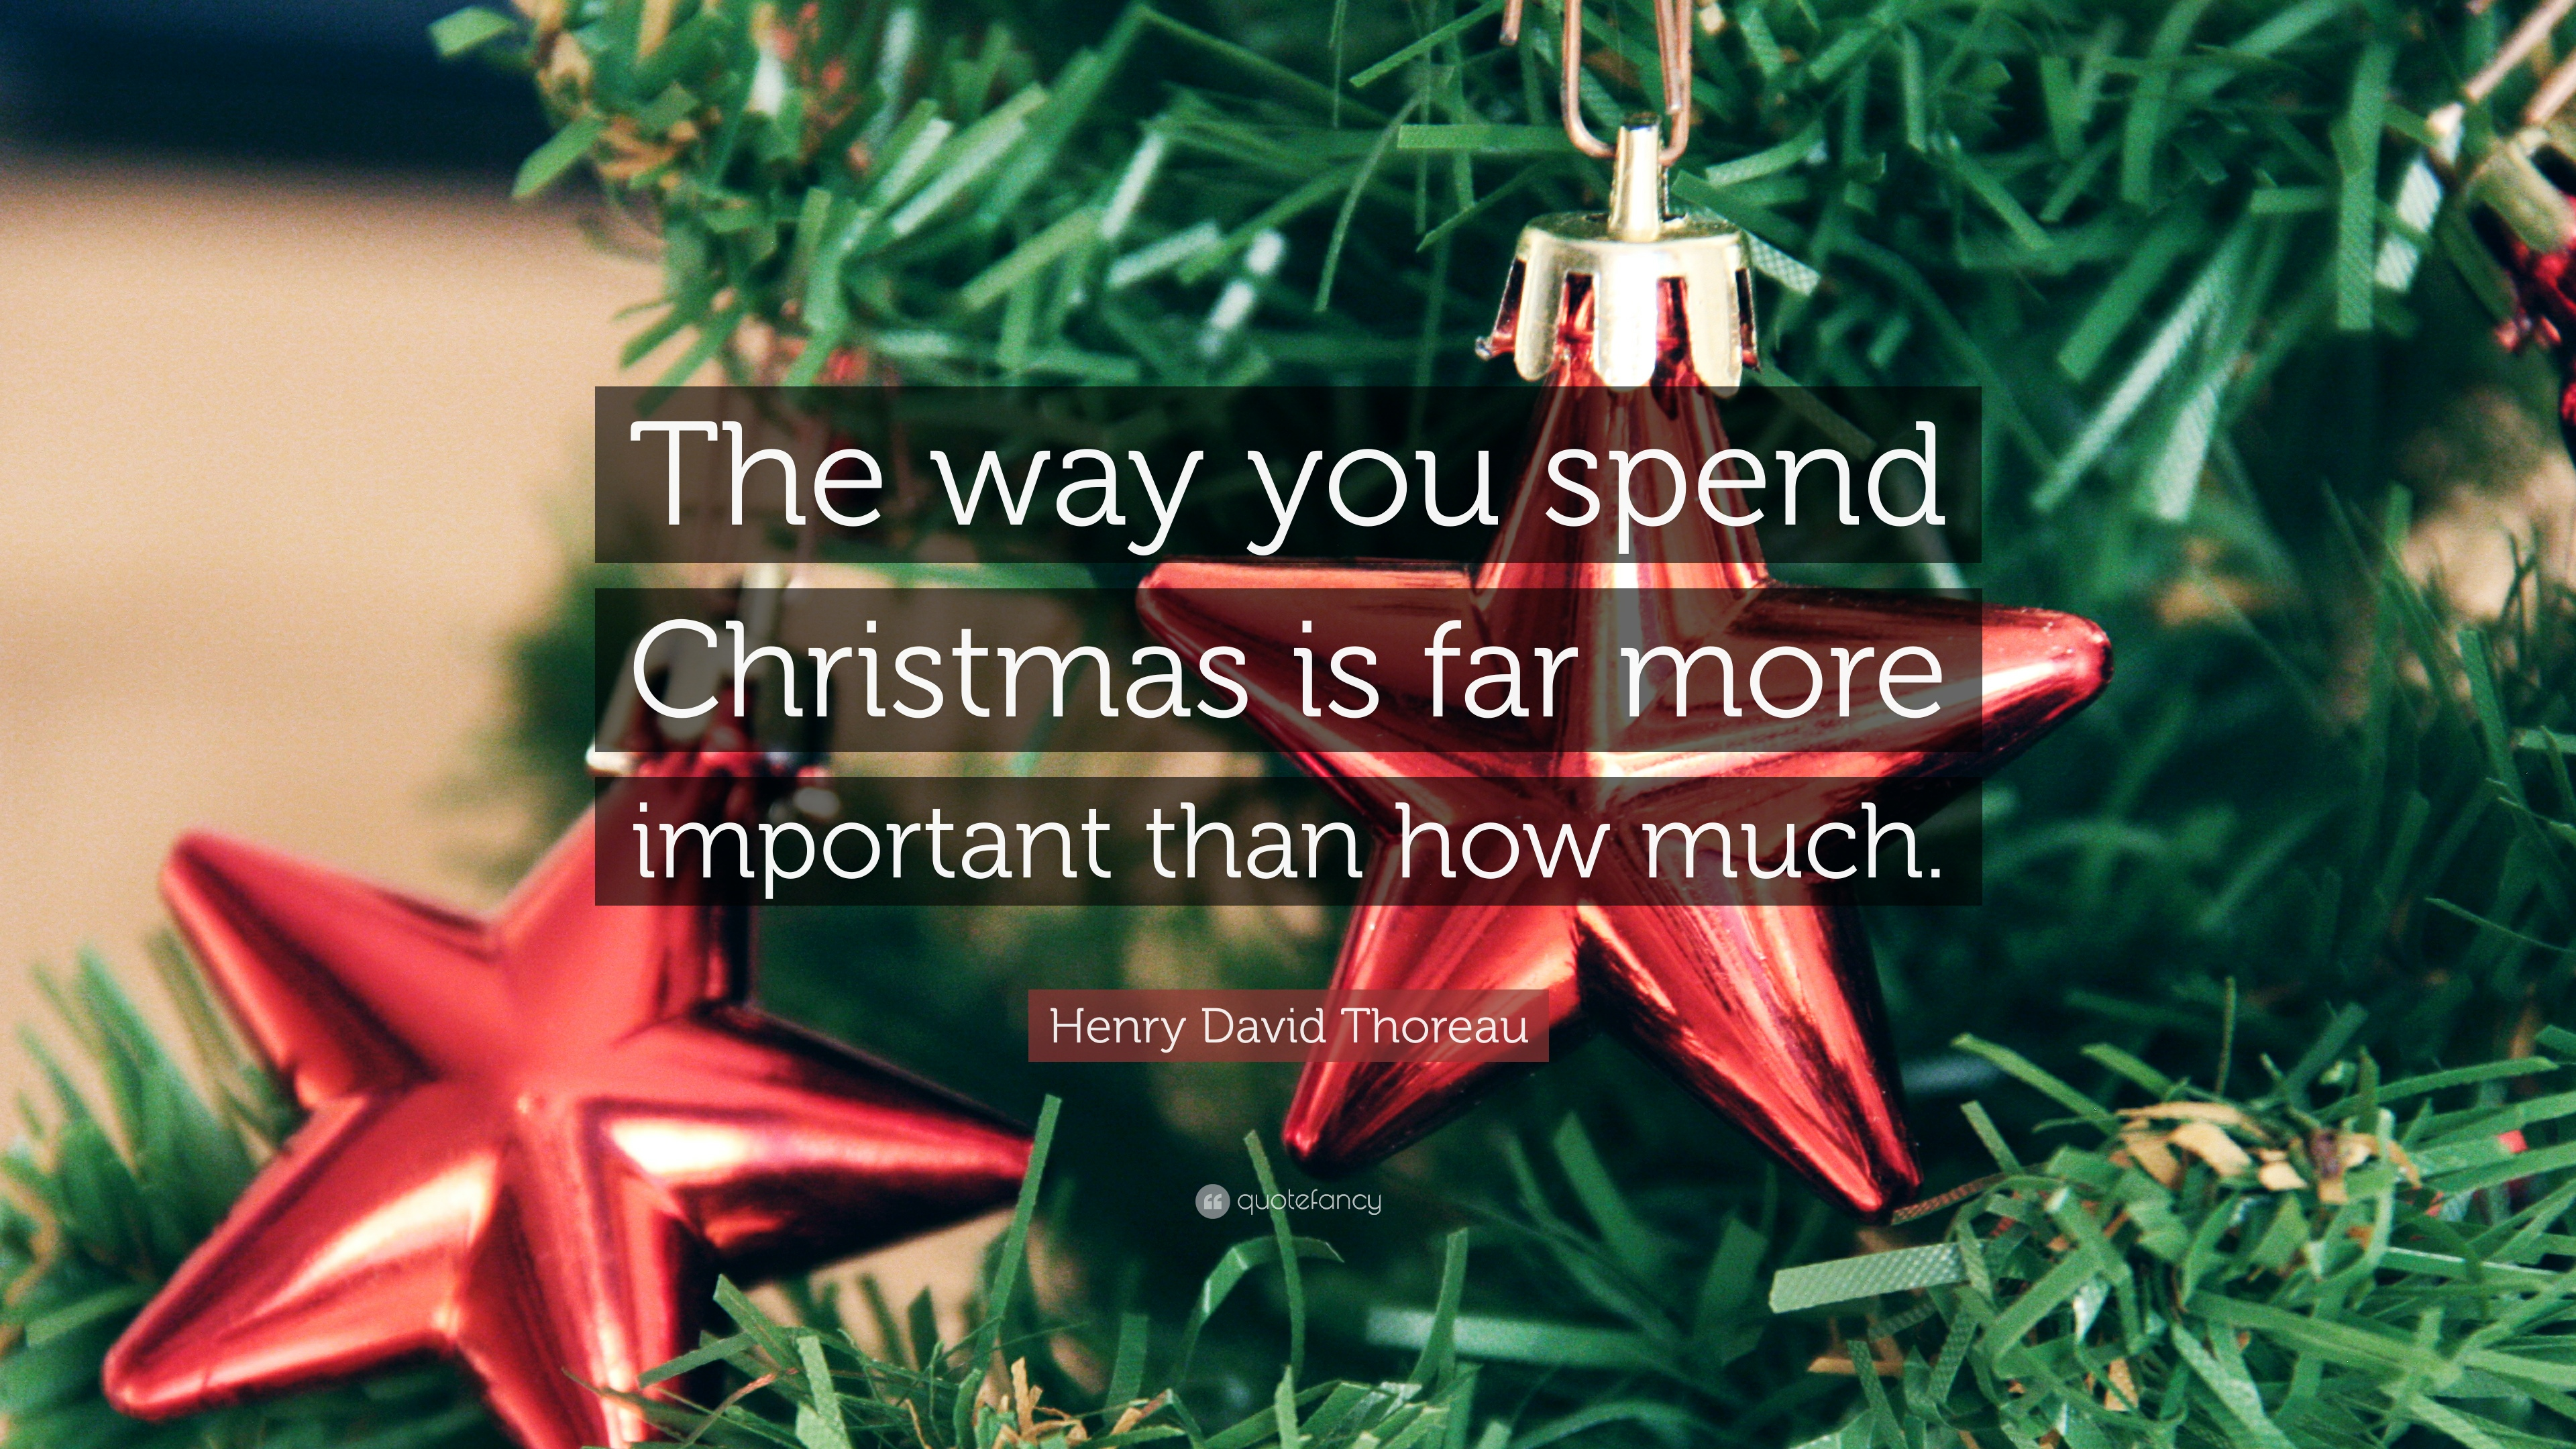 henry david thoreau quote the way you spend christmas is far more important than